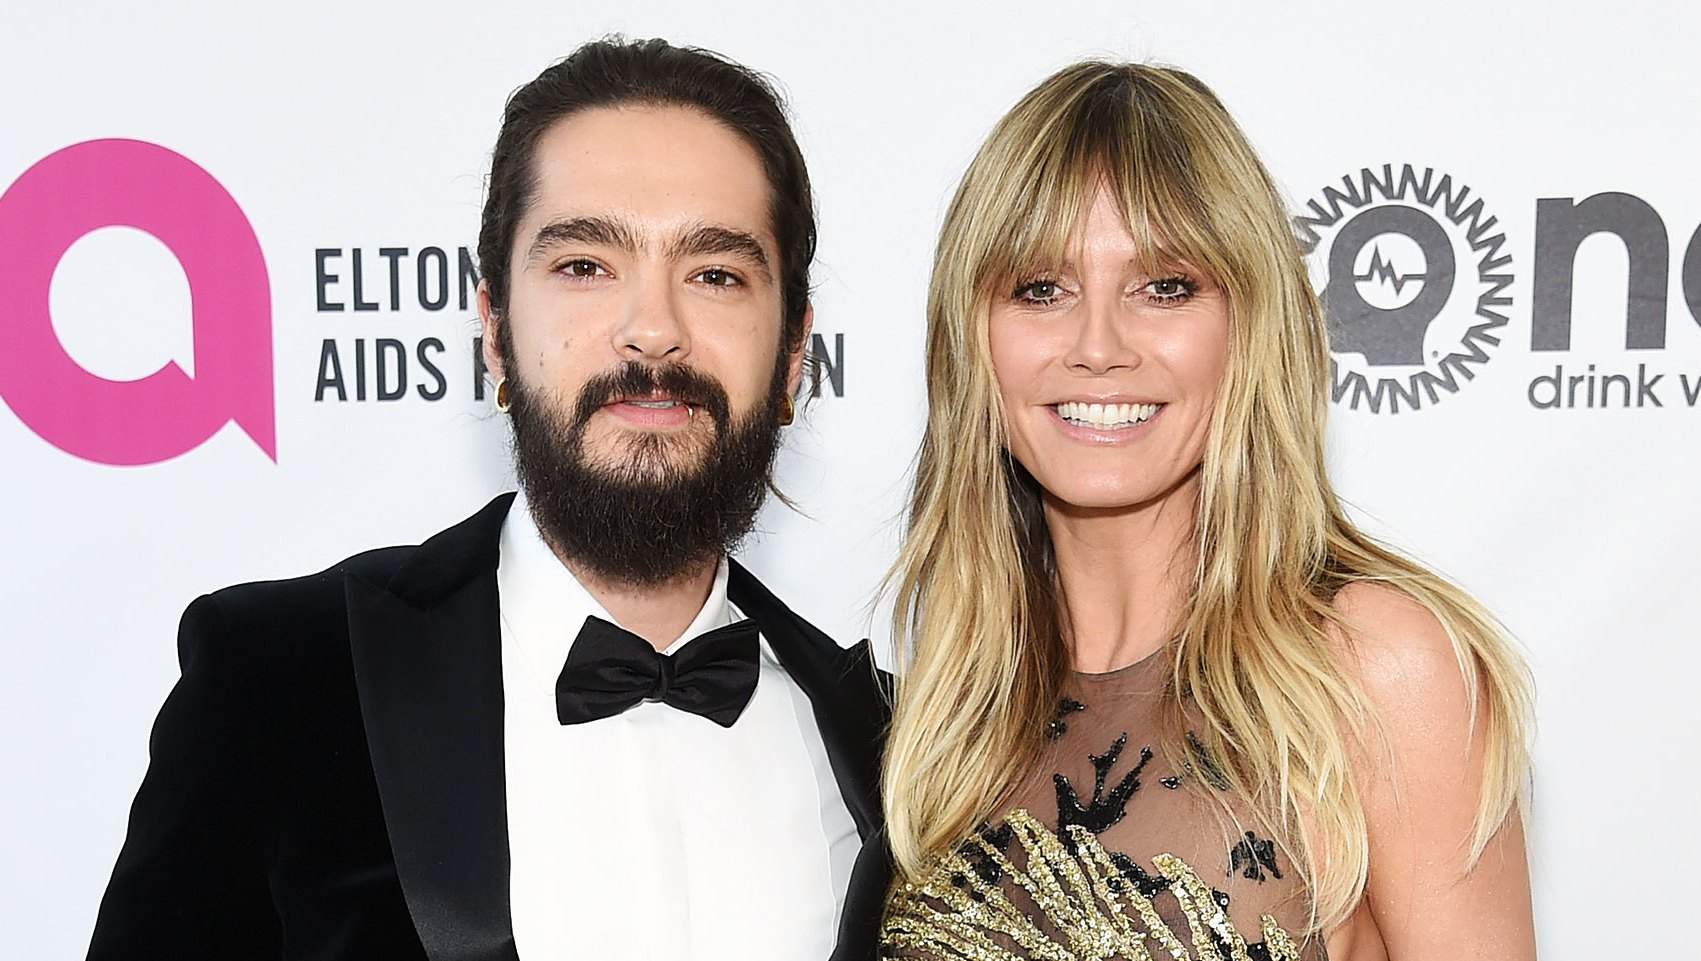 Heidi Klum Ditches Her Top in Hong Kong, Poses for Pictures With Fiance Tom Kaulitz